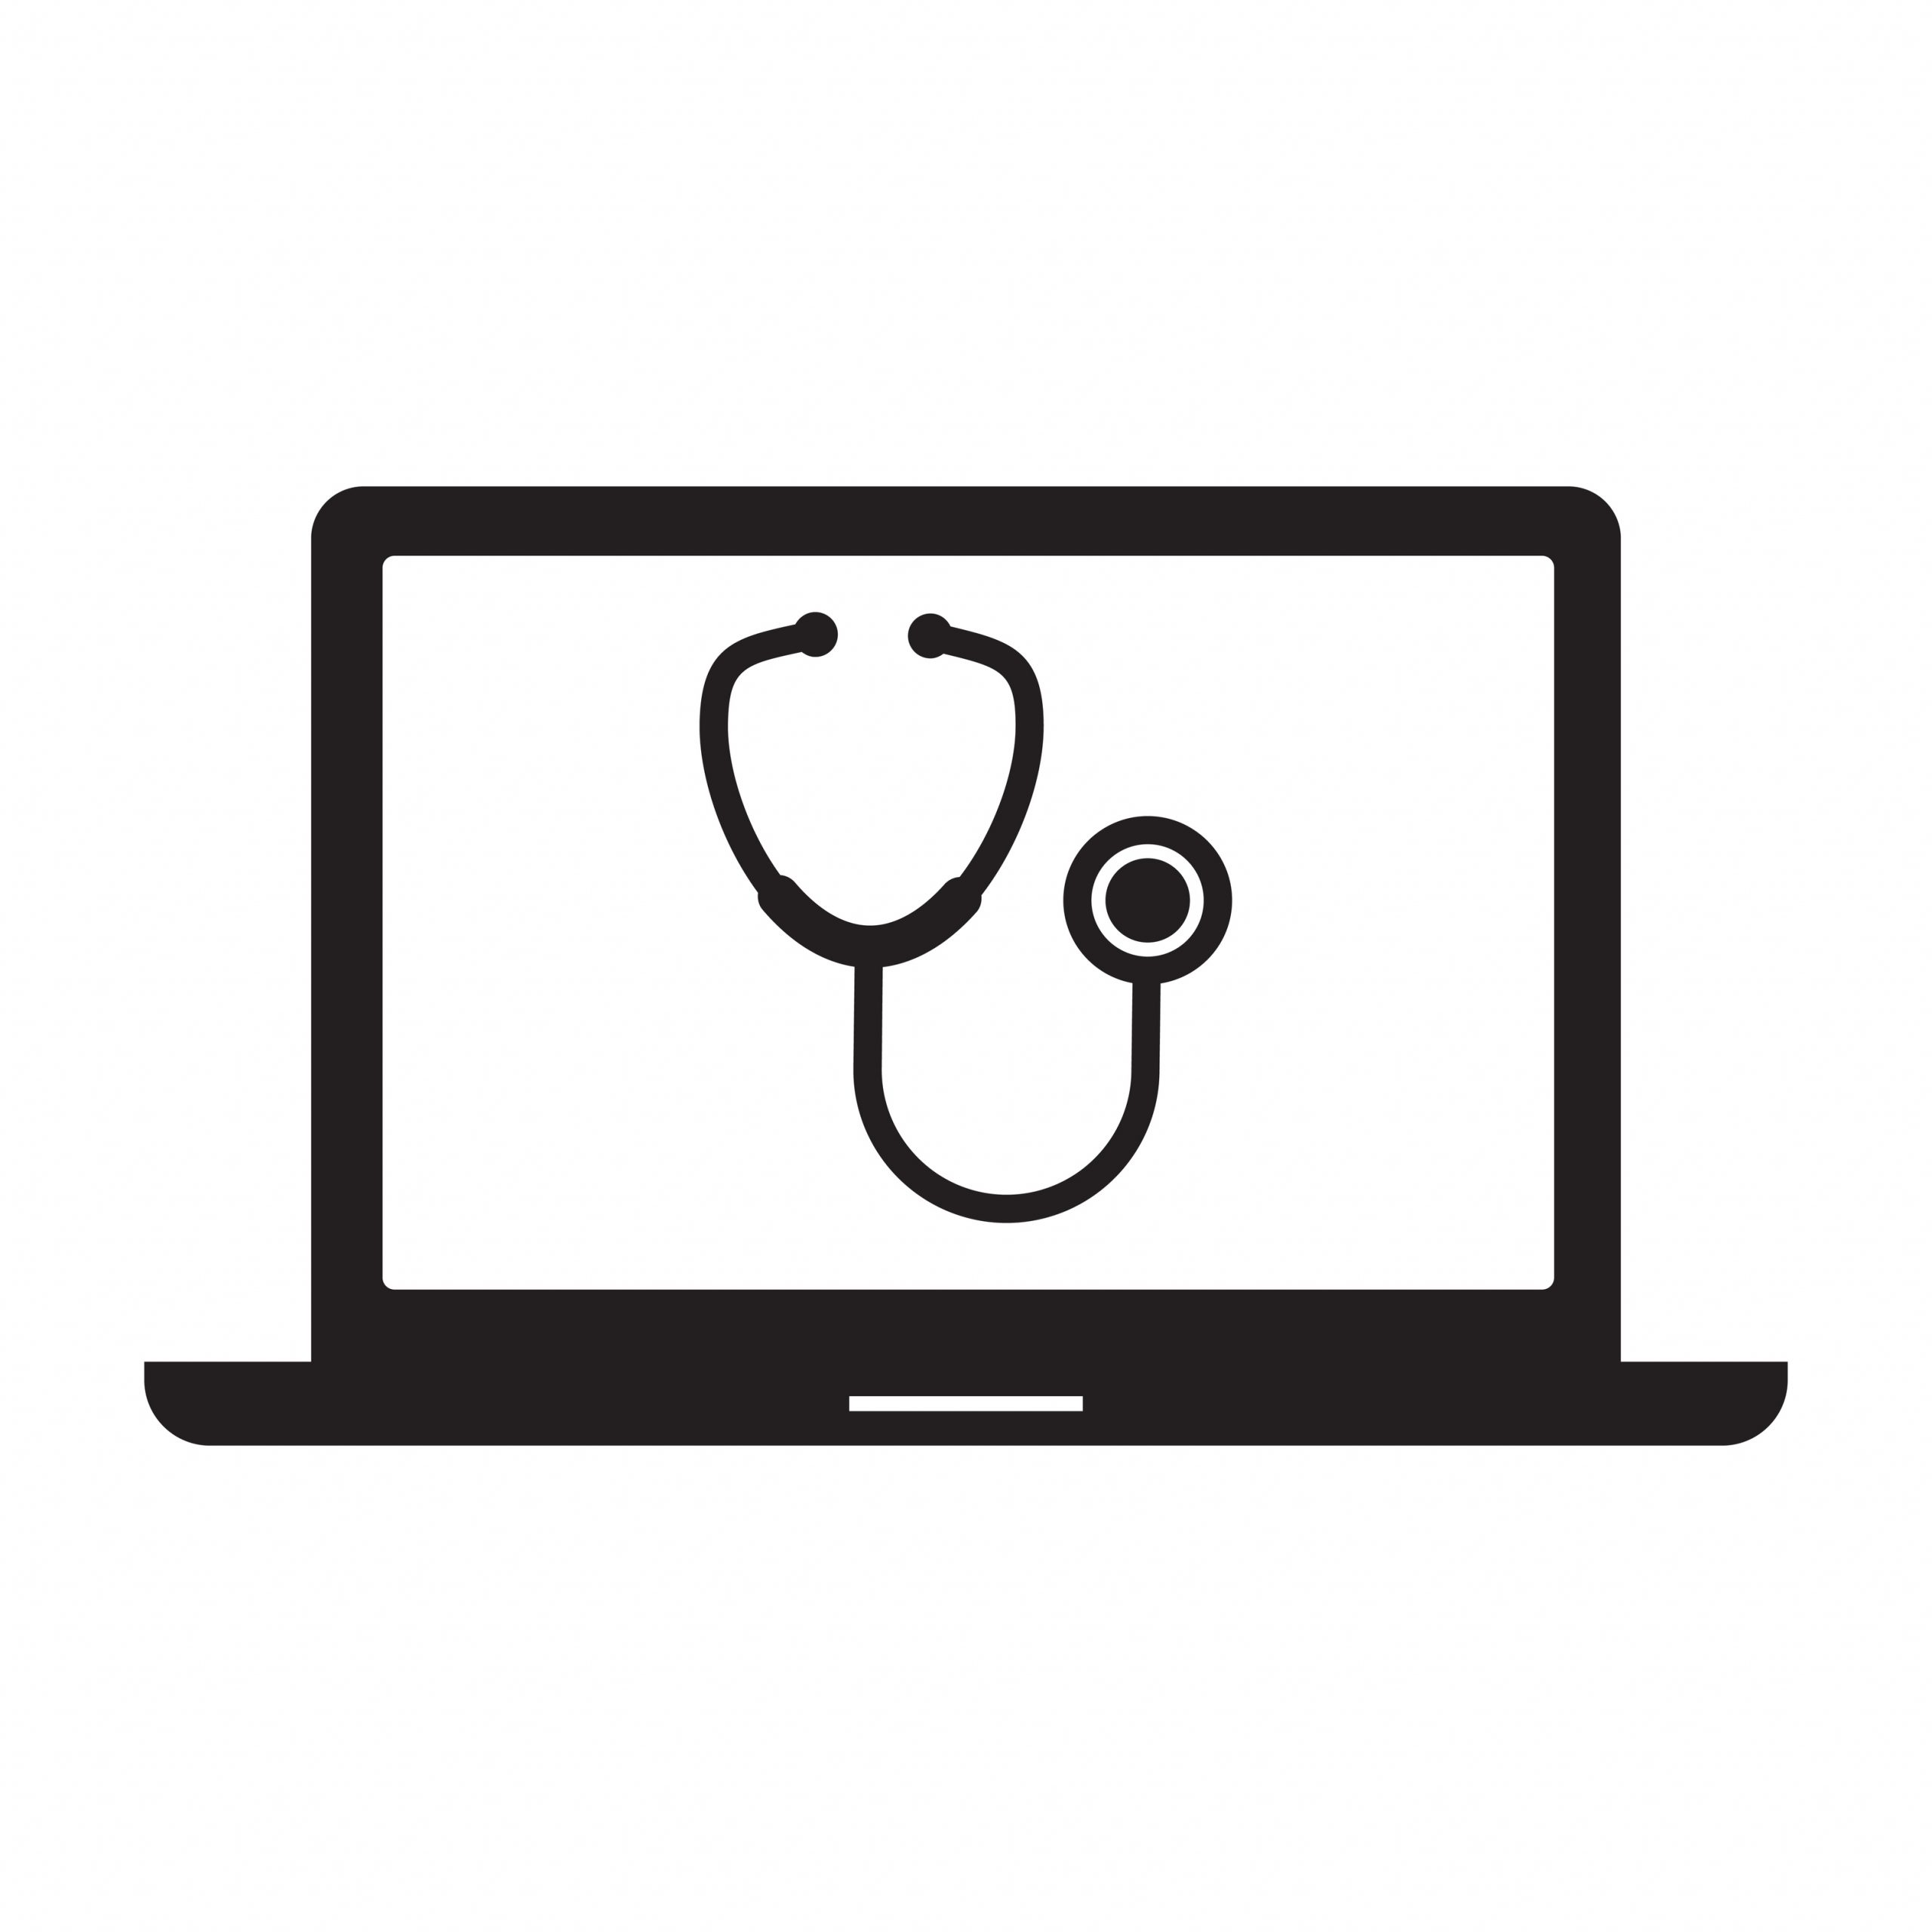 Illustration of a stethoscope on a laptop